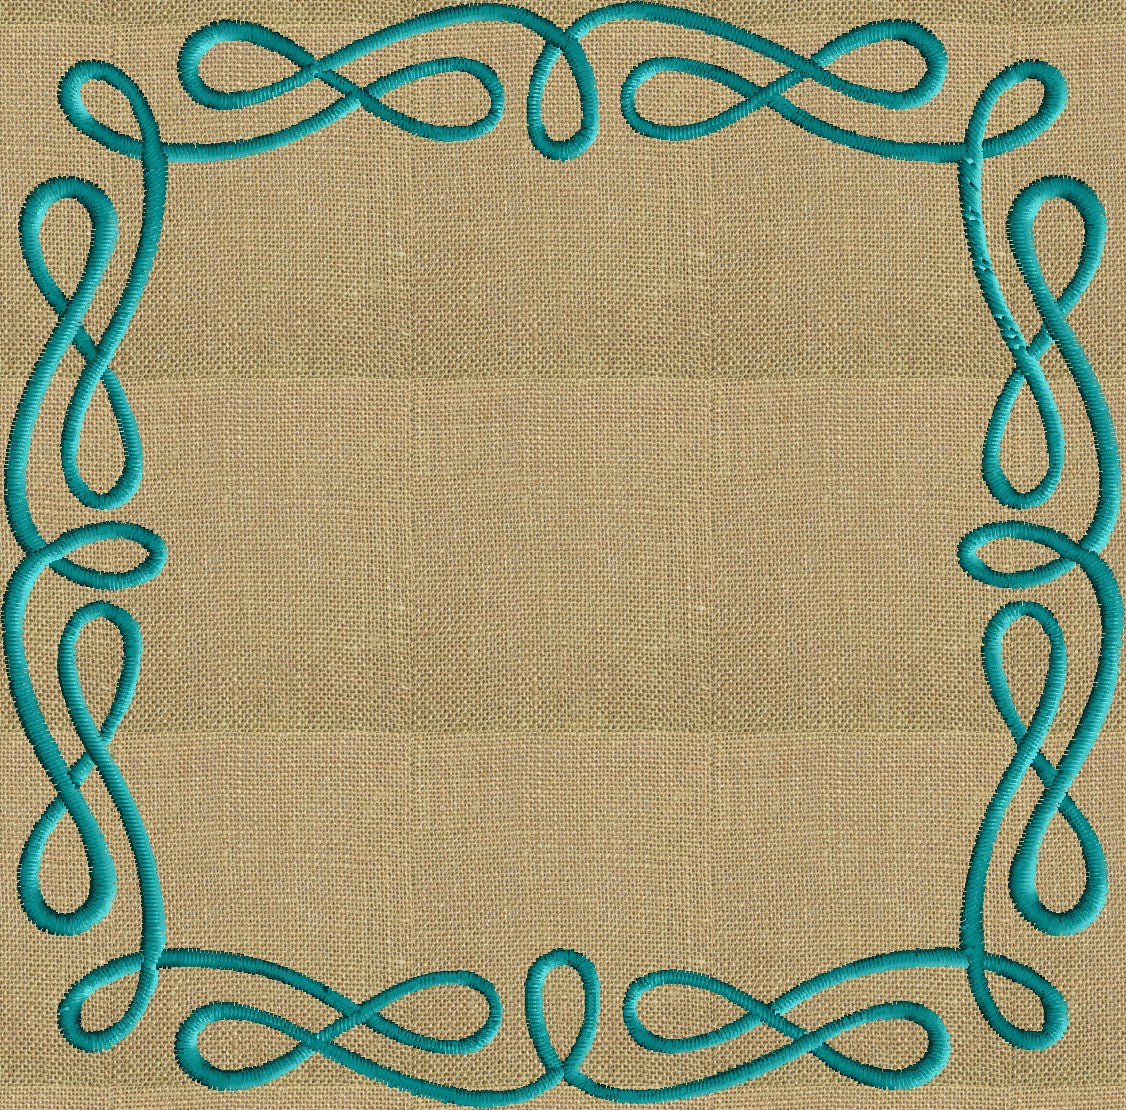 Infinite Frame Monogram -Font not included - EMBROIDERY DESIGN - Instant download